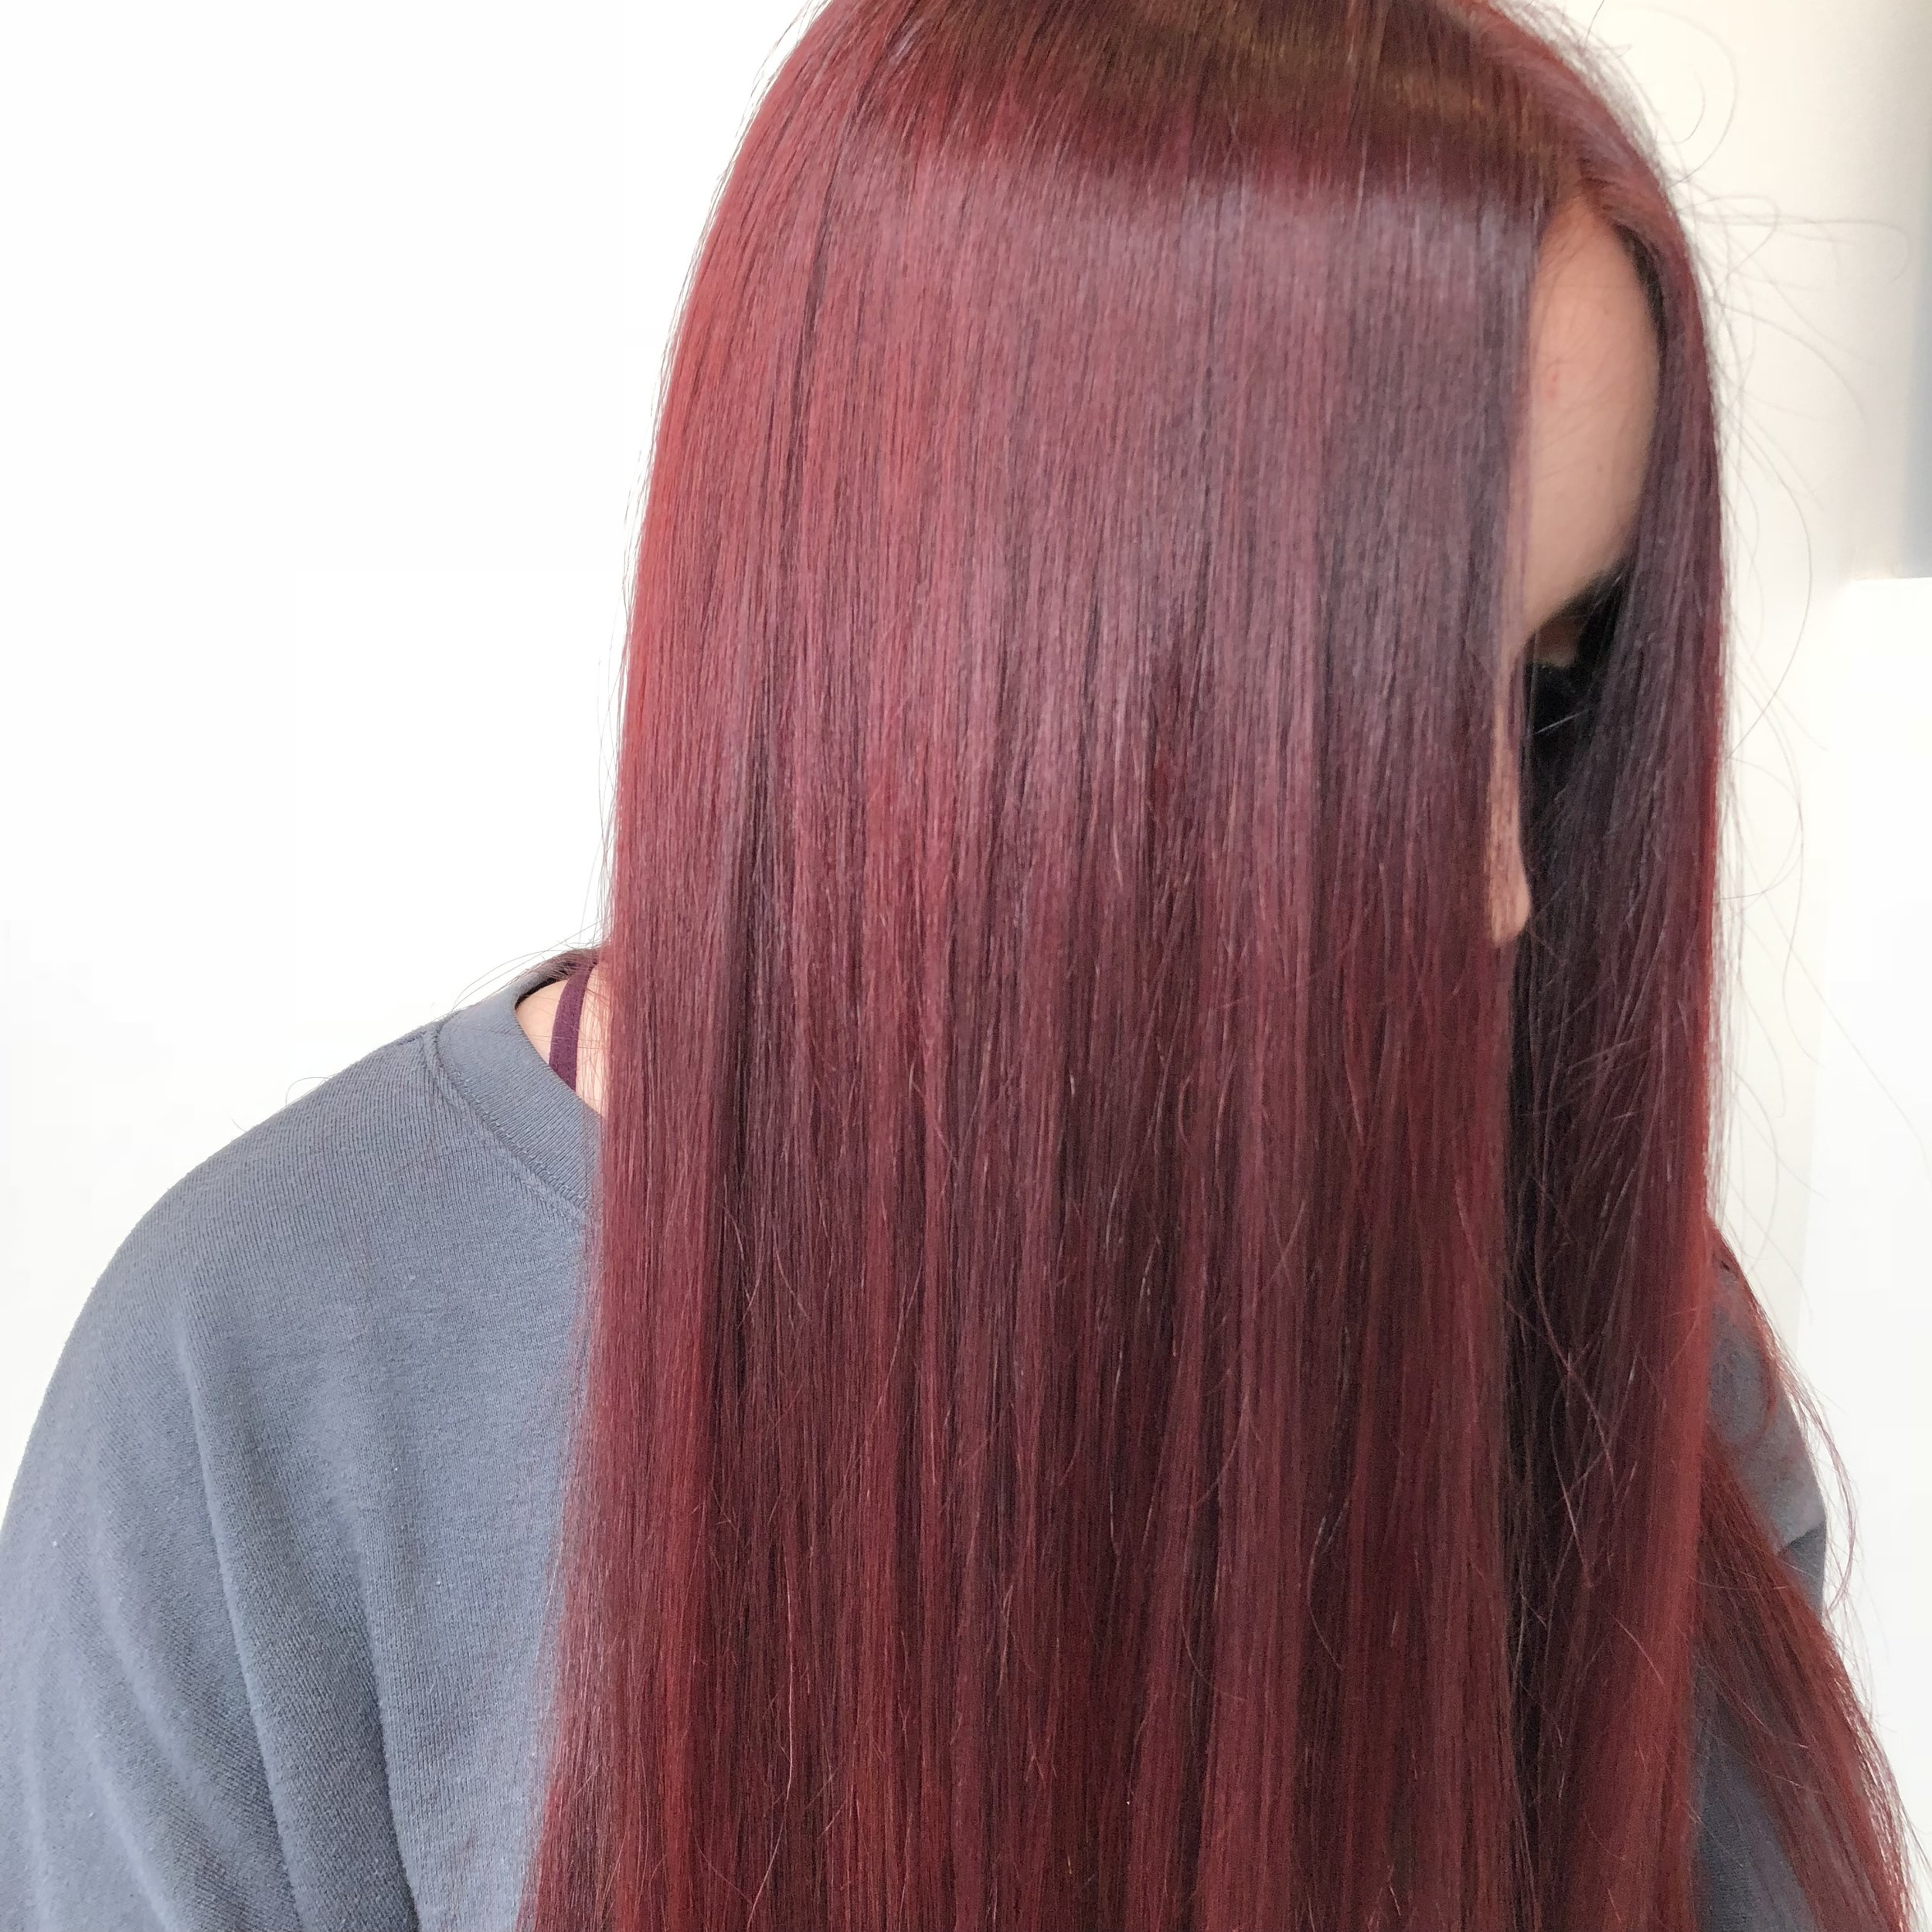 Real Red - From Blorange to mulled wine - reds have been in for the last few years. But the true red that we all love is making its come back. Little Mermaid inspired.